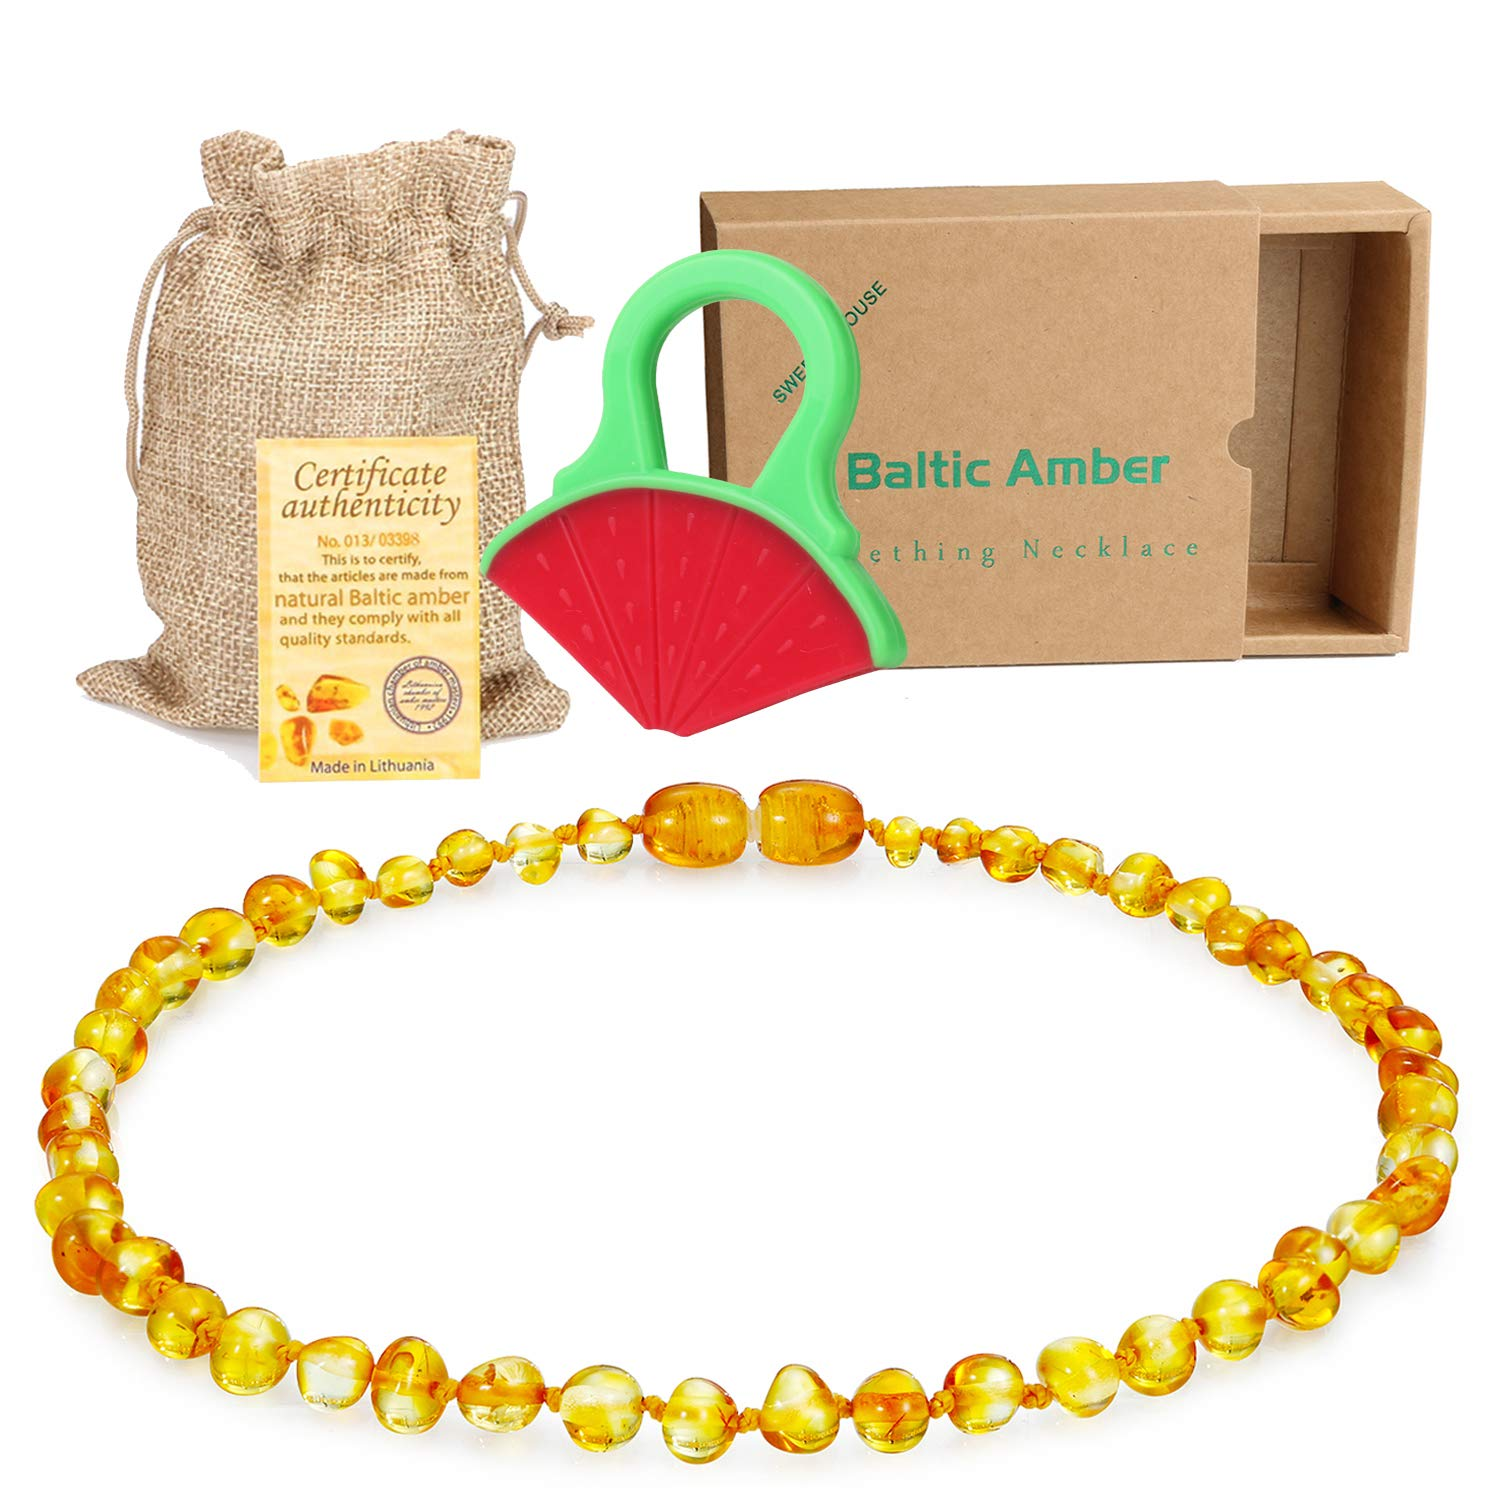 Baby Baltic Amber Teething Necklace Jewelry - (Cherry) Anti-Flammatory, Drooling & Free Teething Toy Pain Reduce - Reduces Tension and Fear, Teething Necklace for 3 to 36 Months Babies,Boys and Girls… Boys and Girls… Dannielbaby